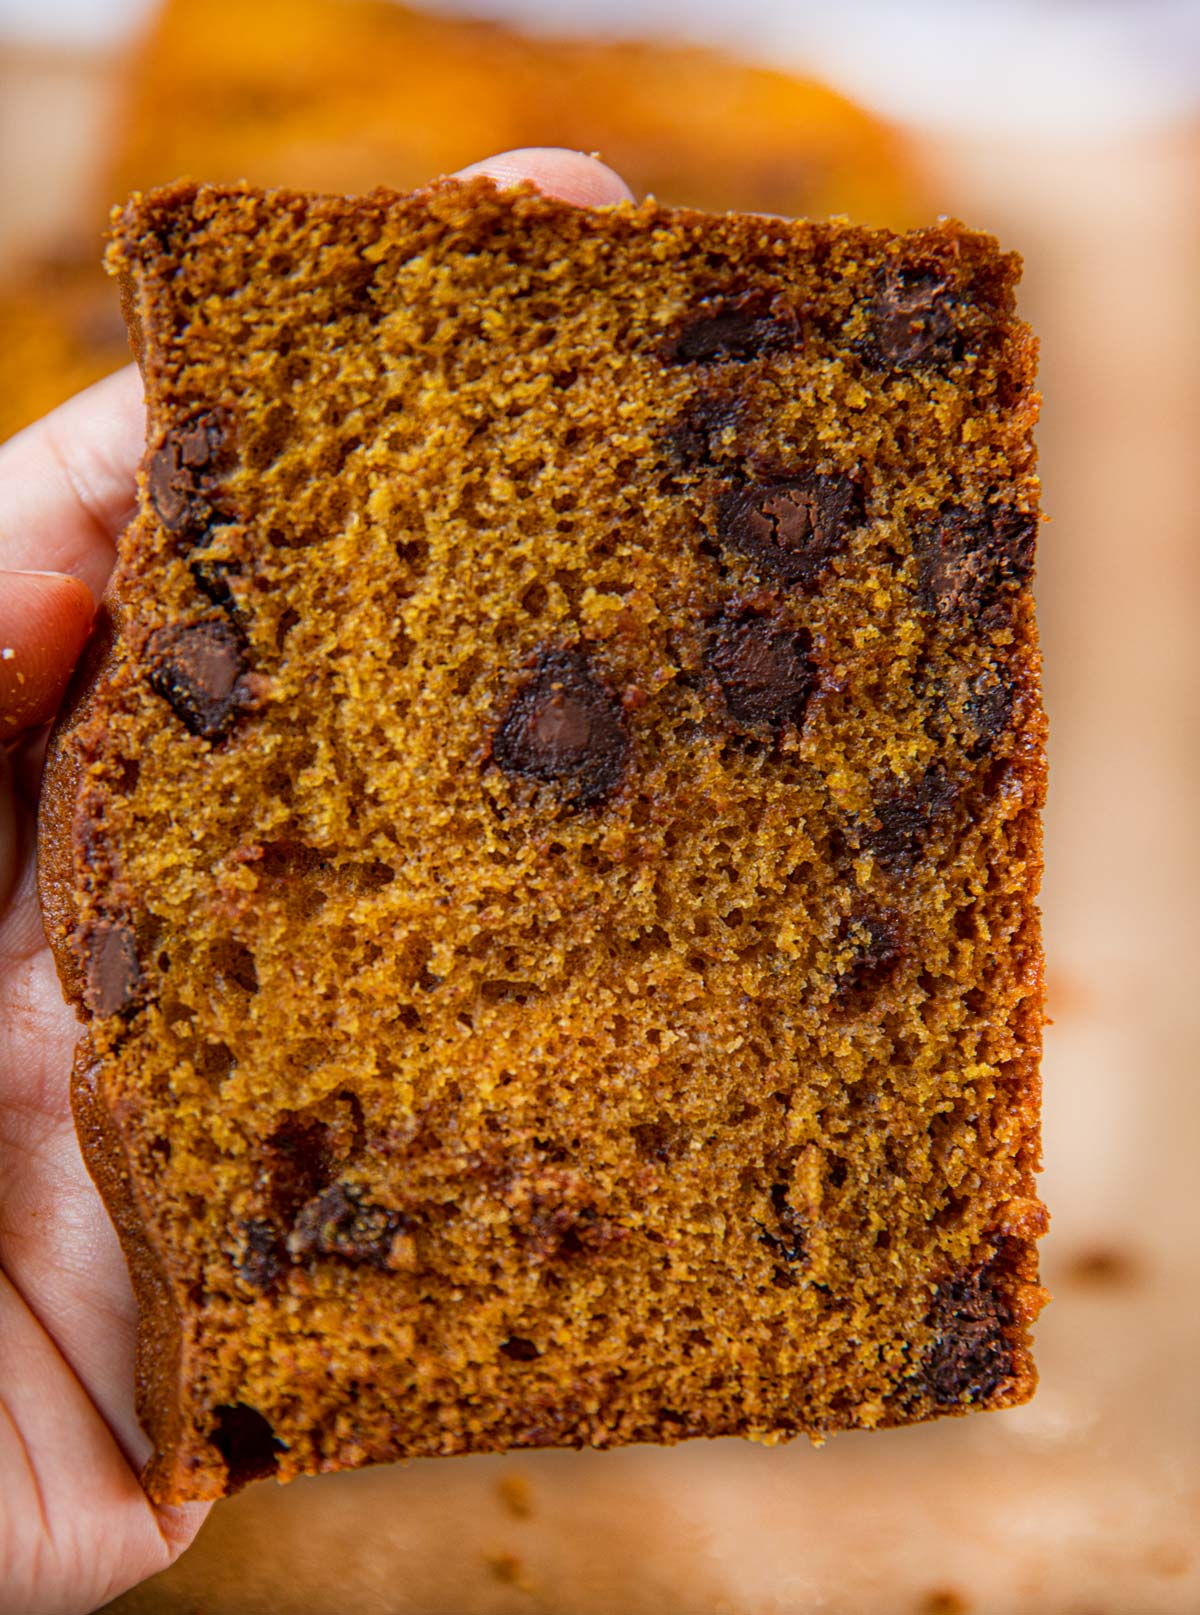 Slice of Pumpkin Chocolate Chip Bread